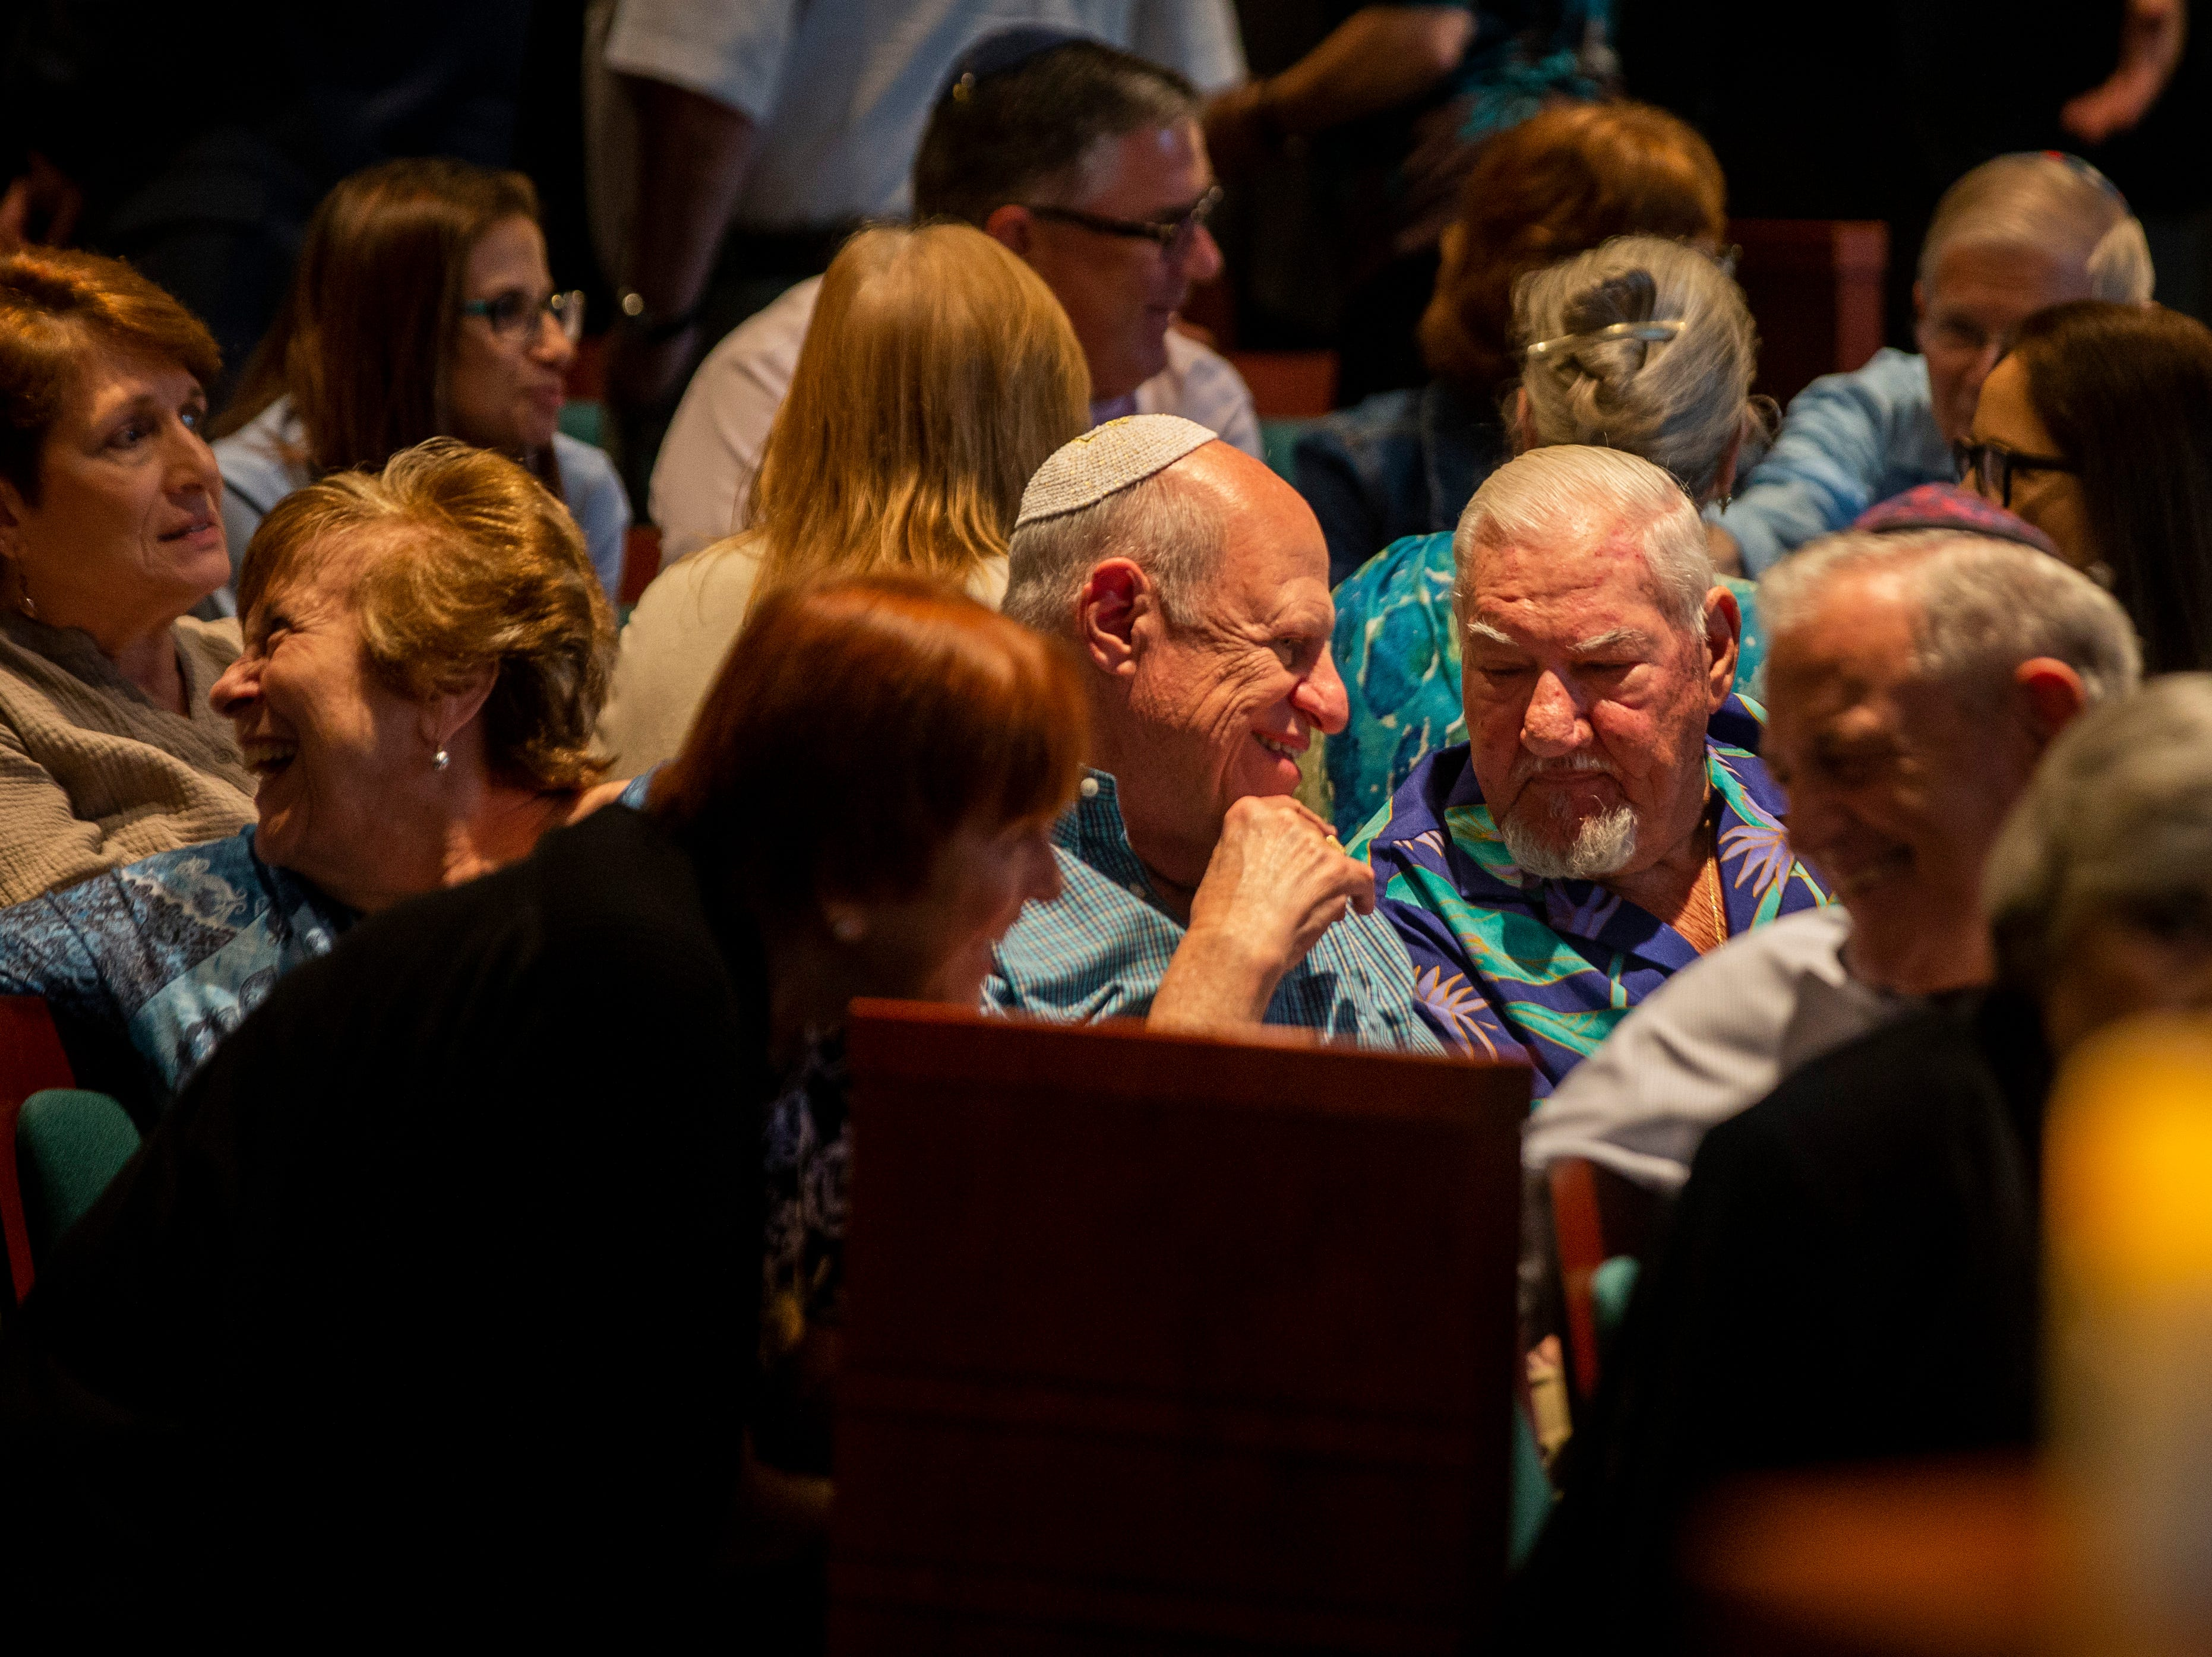 Members of the congregation introduce themselves to people they don't know after being instructed to do so by Rabbi Nicole Luna on Monday, October 29, 2018, at Temple Beth-El in Fort Myers. Rabbi Luna said in the opening of the service that an integral step to building a strong community is getting to know the people around you.